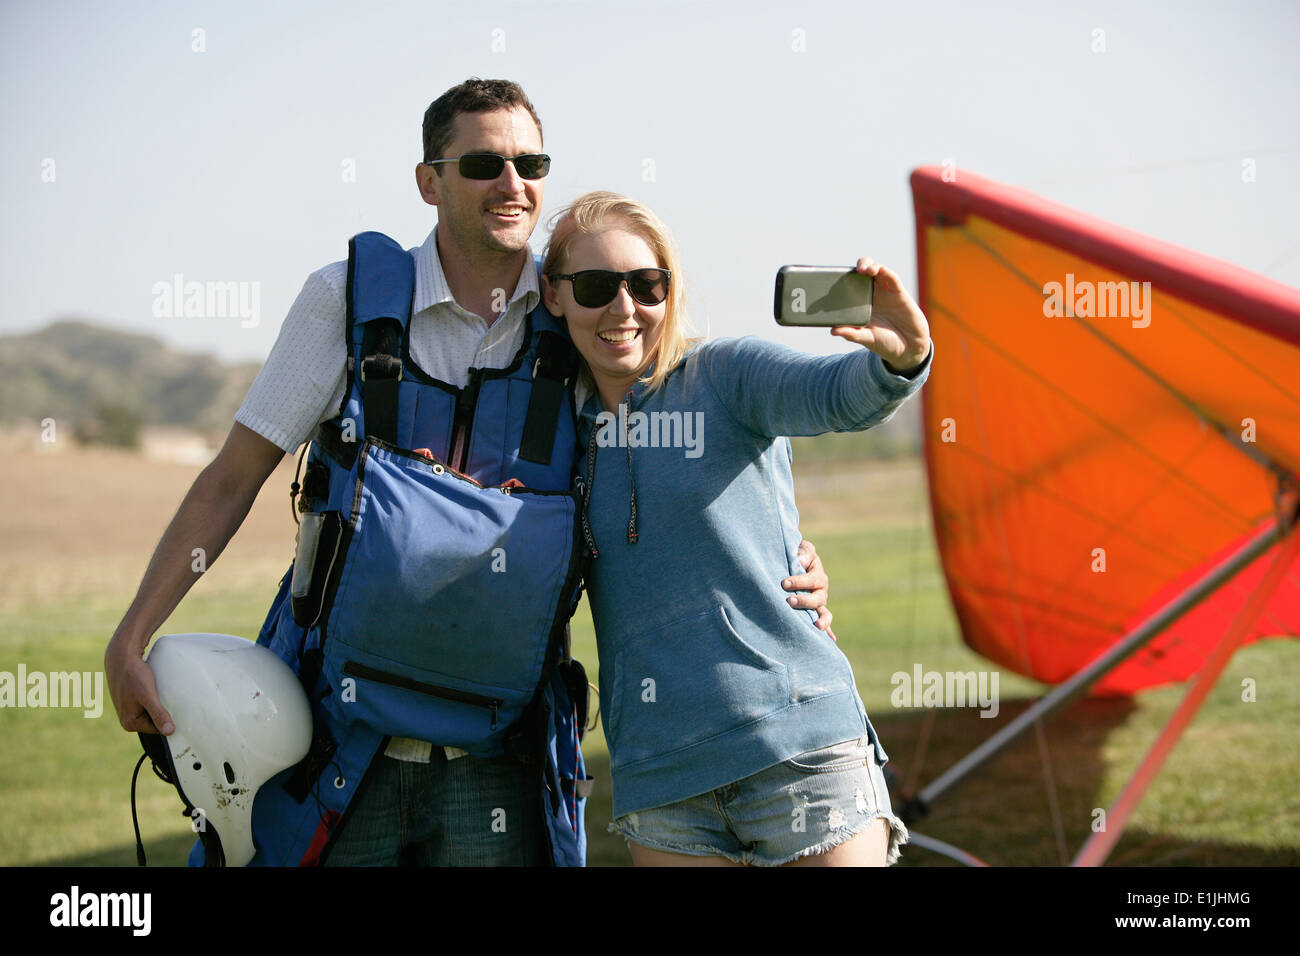 Couple taking selfie, hang glider in background Stock Photo